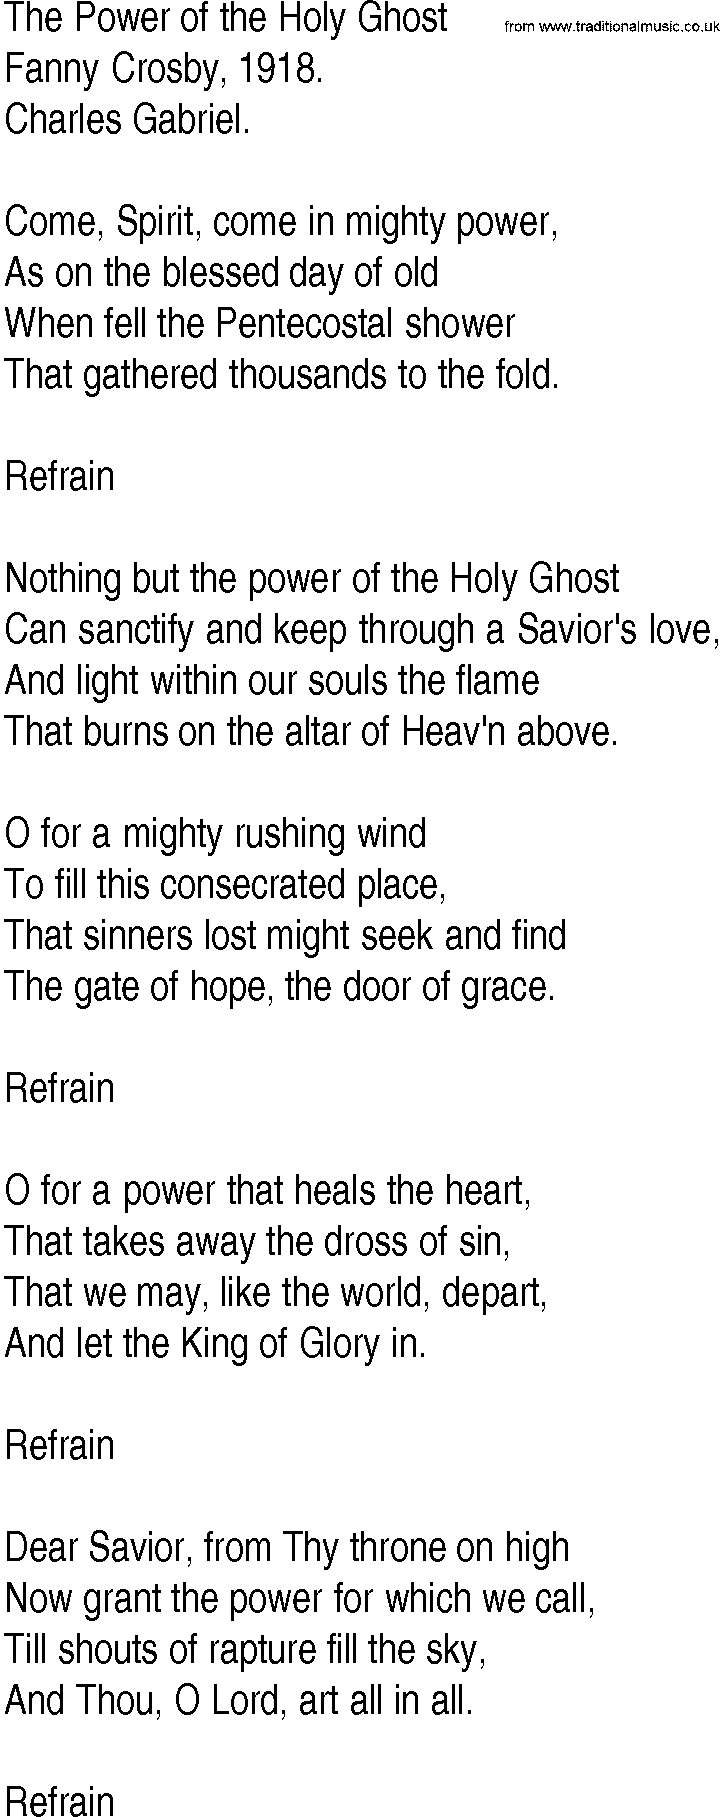 Hymn and Gospel Song Lyrics for The Power of the Holy Ghost by Fanny